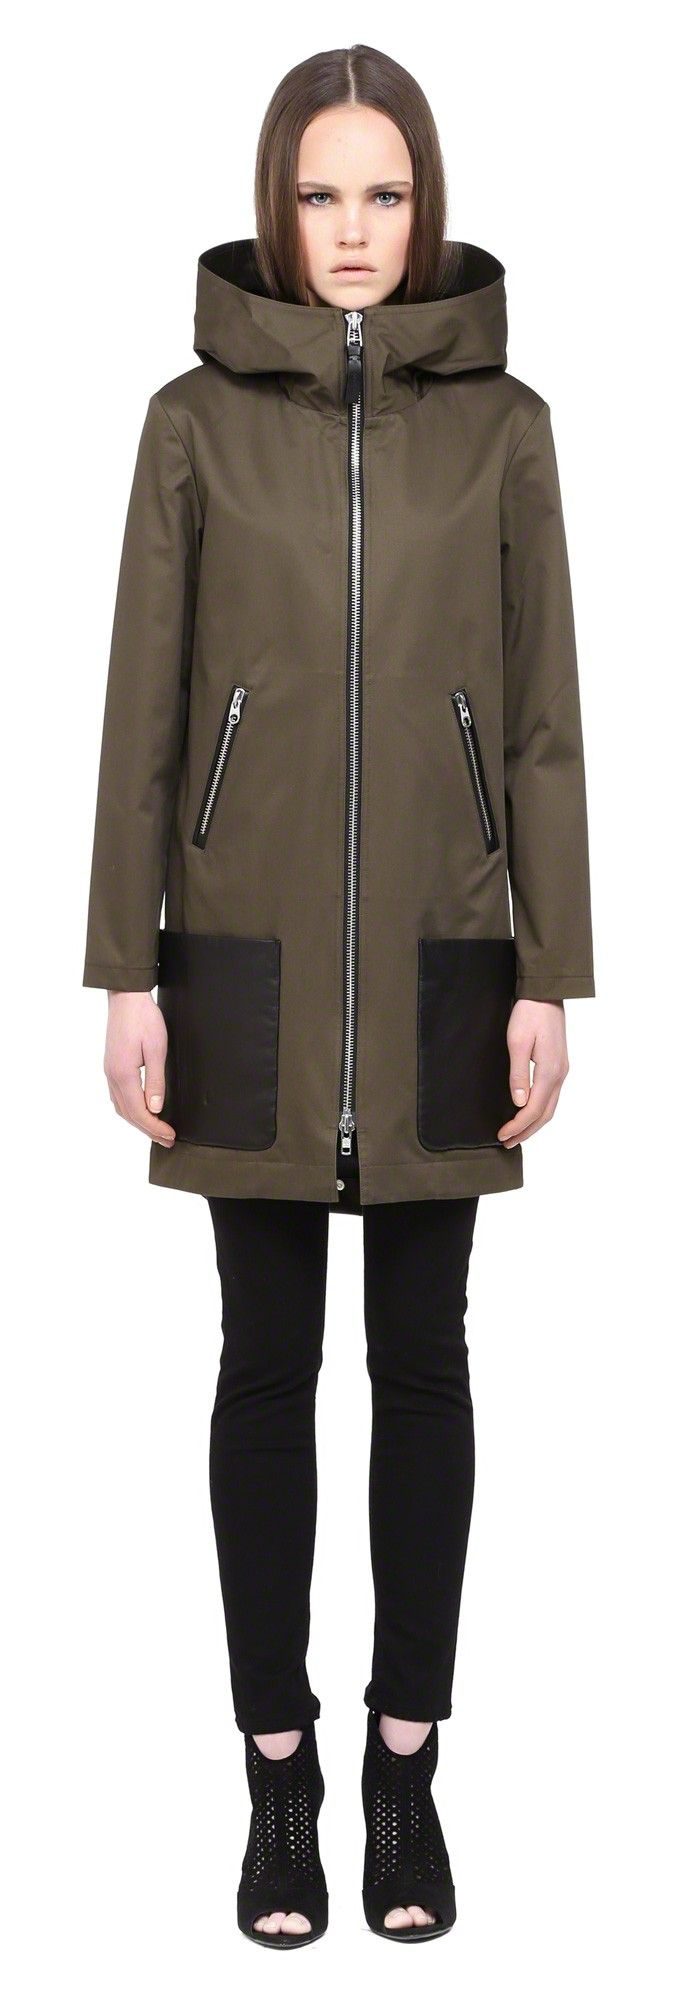 MACKAGE DIVYA KHAKI SPRING TRENCH COAT WITH HOOD FOR WOMEN  #mackage #trenches